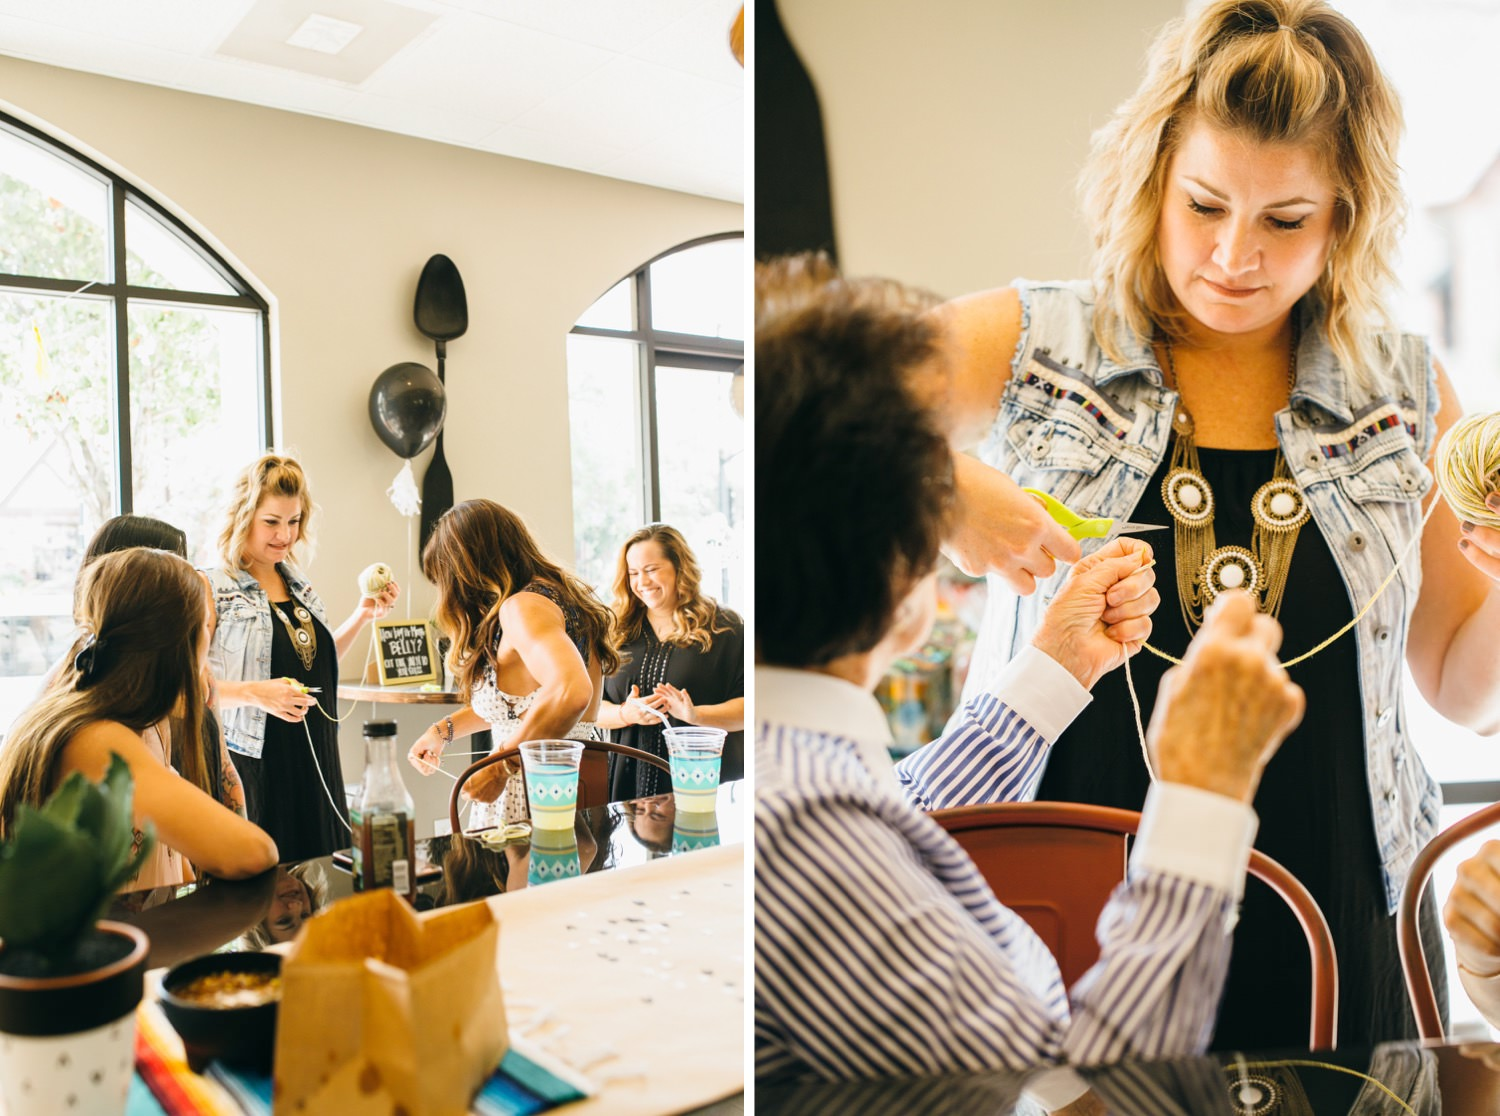 Baby Shower Inspiration - Party Games - https://brittneyhannonphotography.com